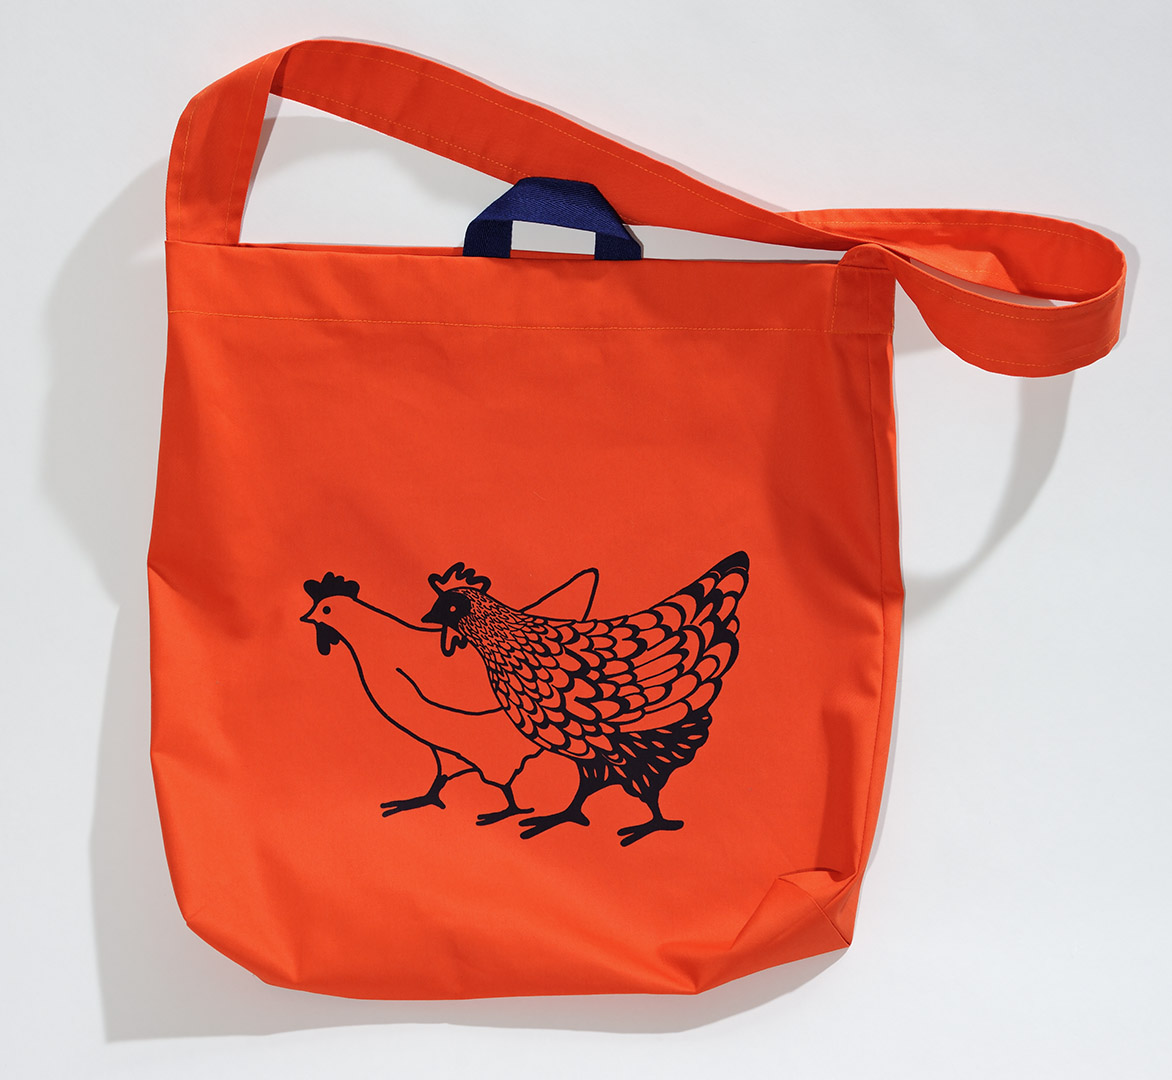 2 Chooks shopping bag